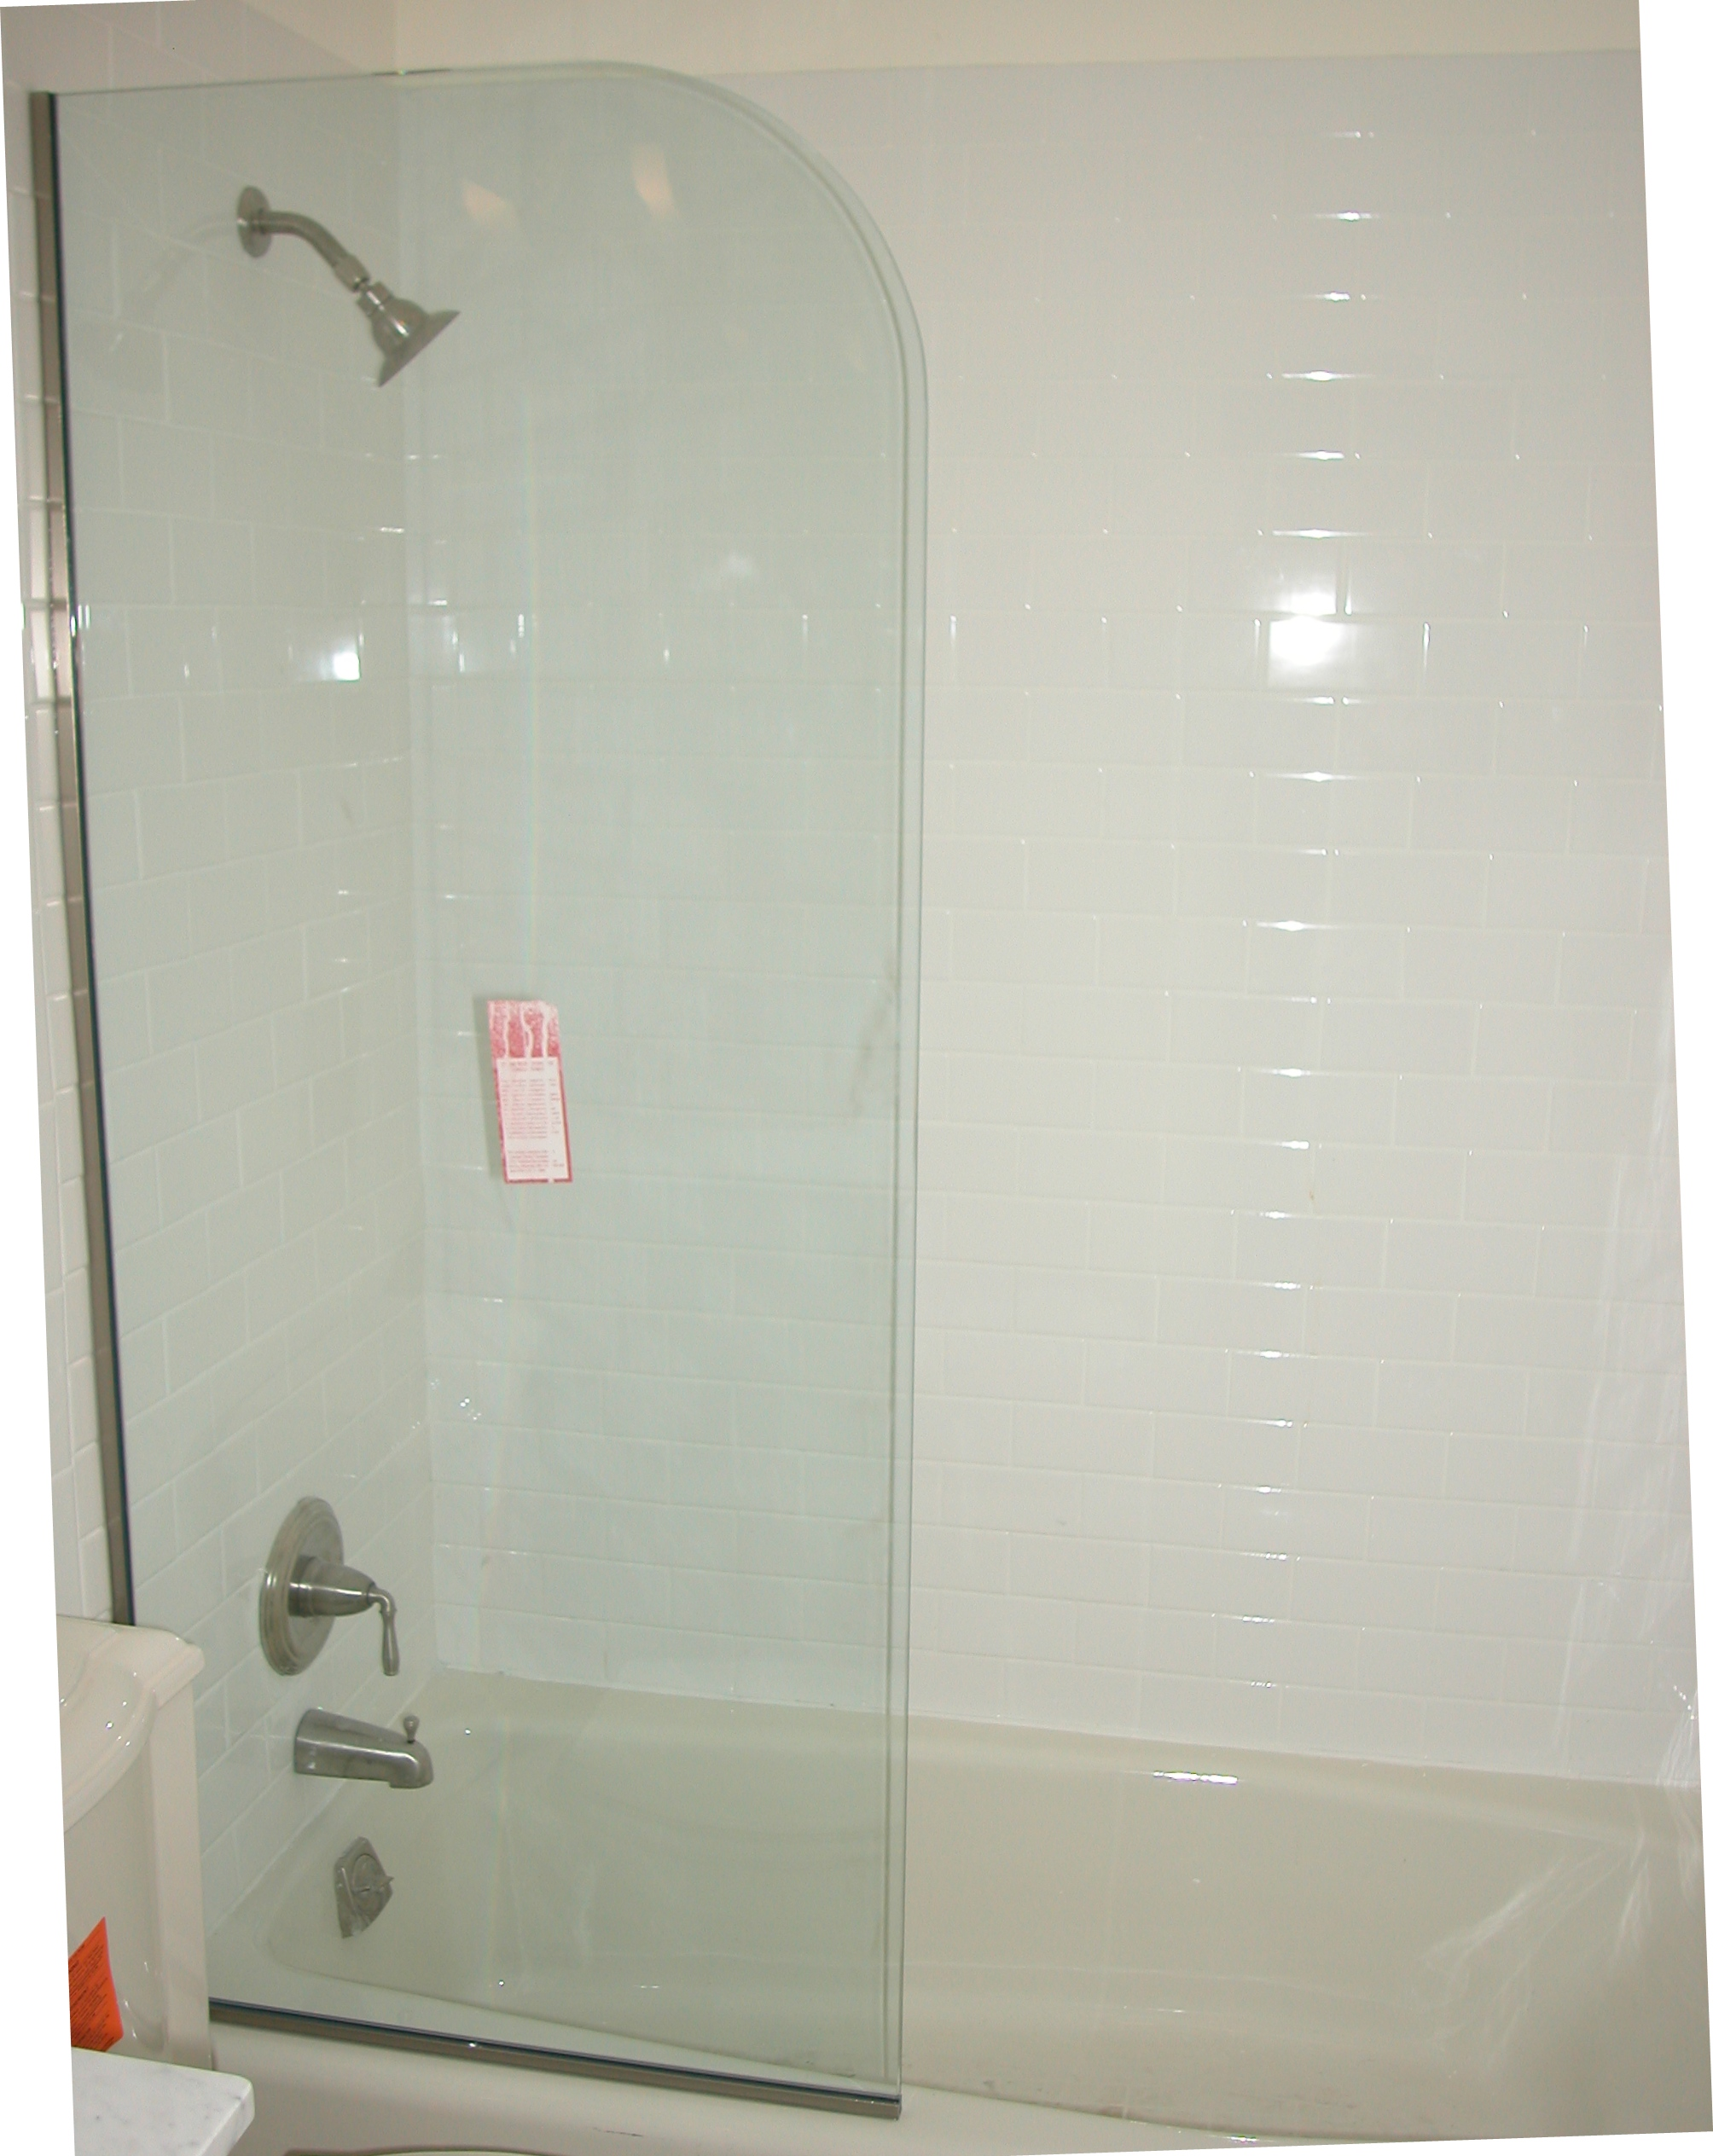 seamless doors all good of design ideas image shower